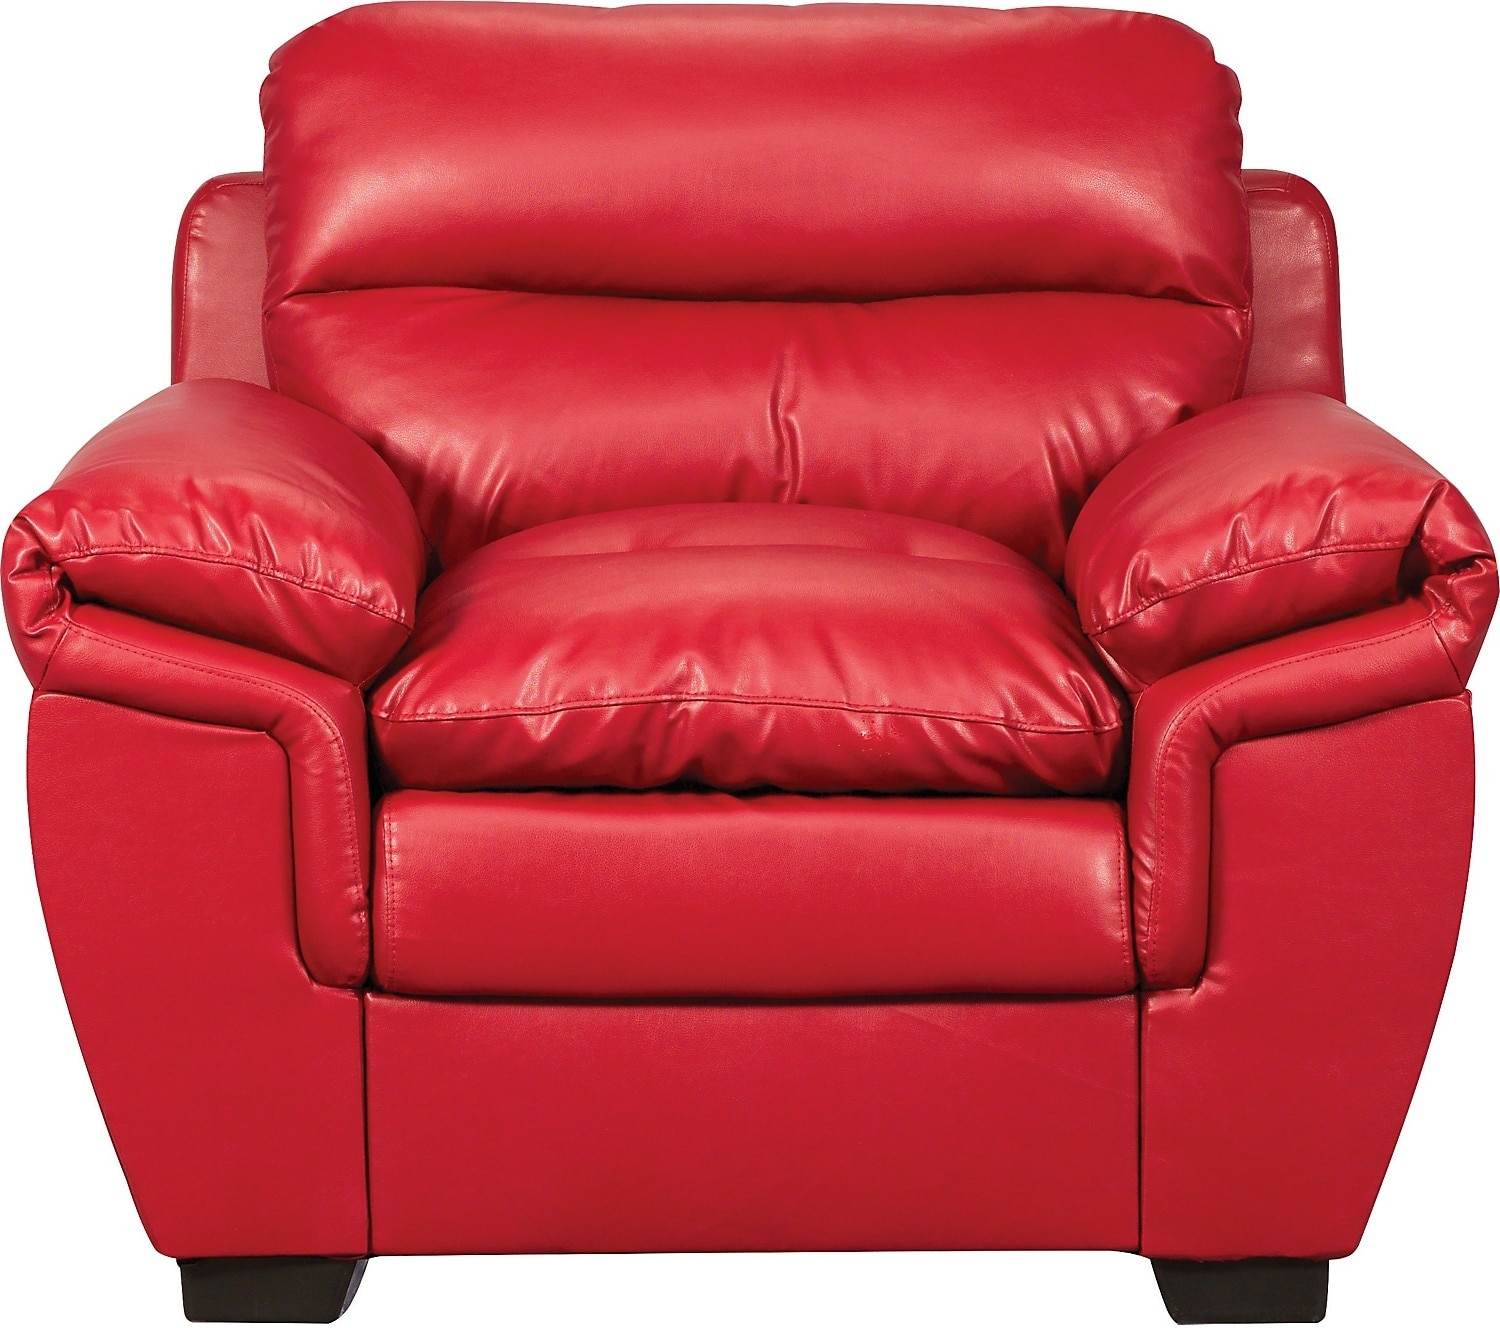 Living Room Furniture - E6 Red Bonded Leather Chair